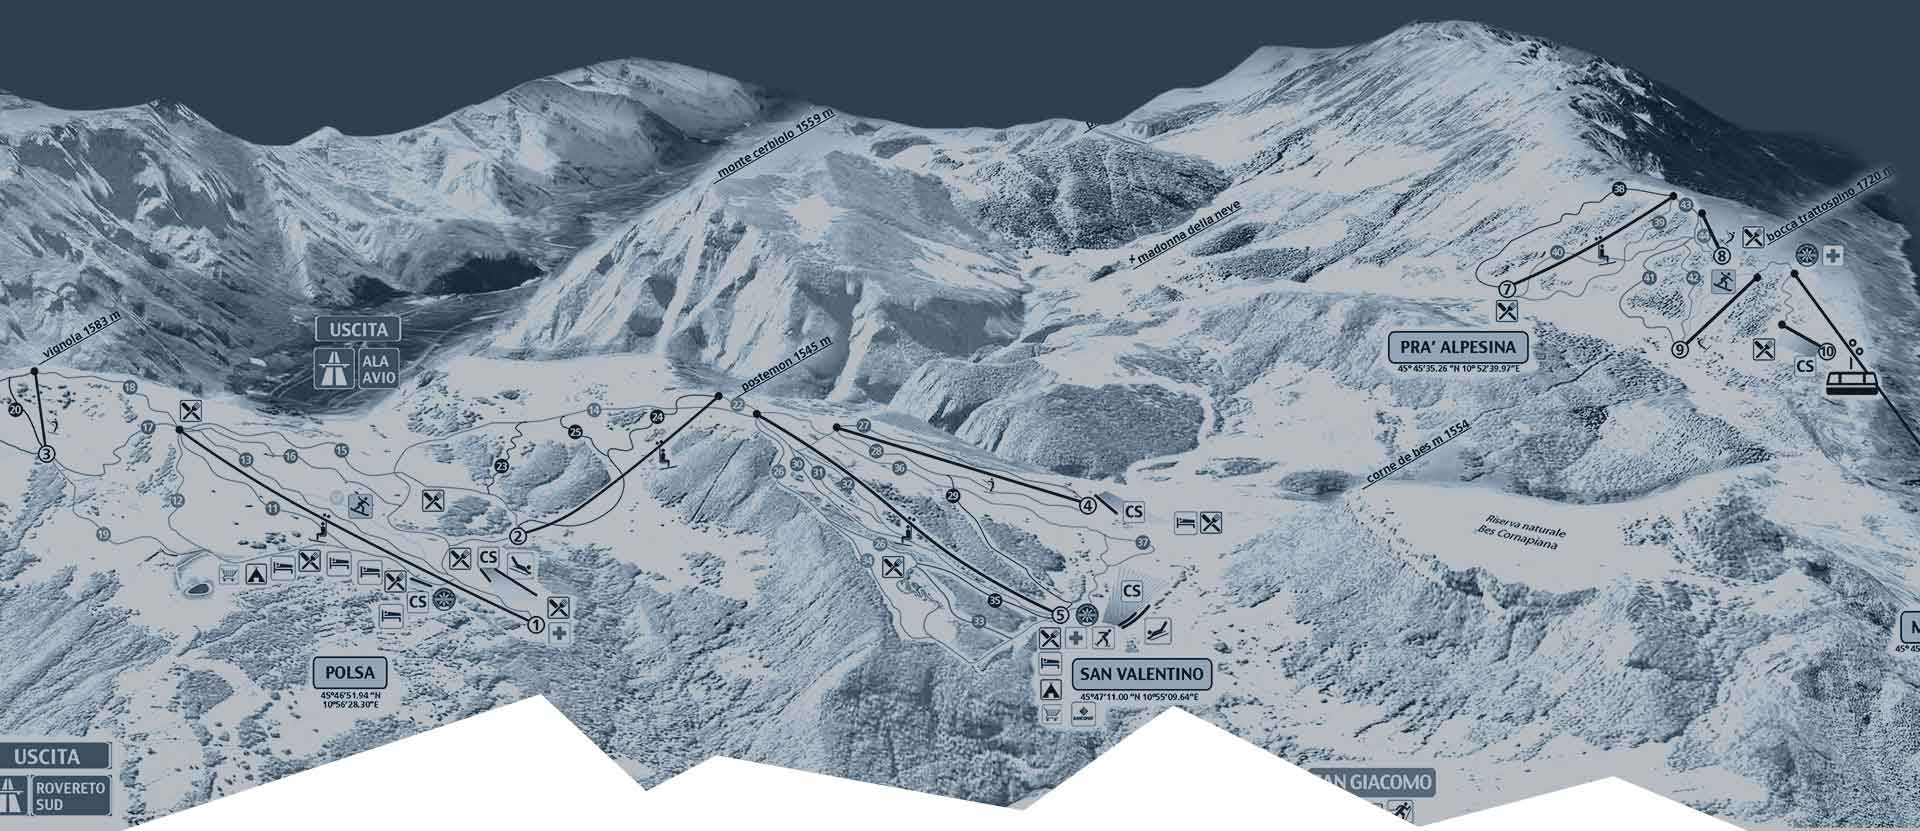 Brentonico Ski Map Background Filter